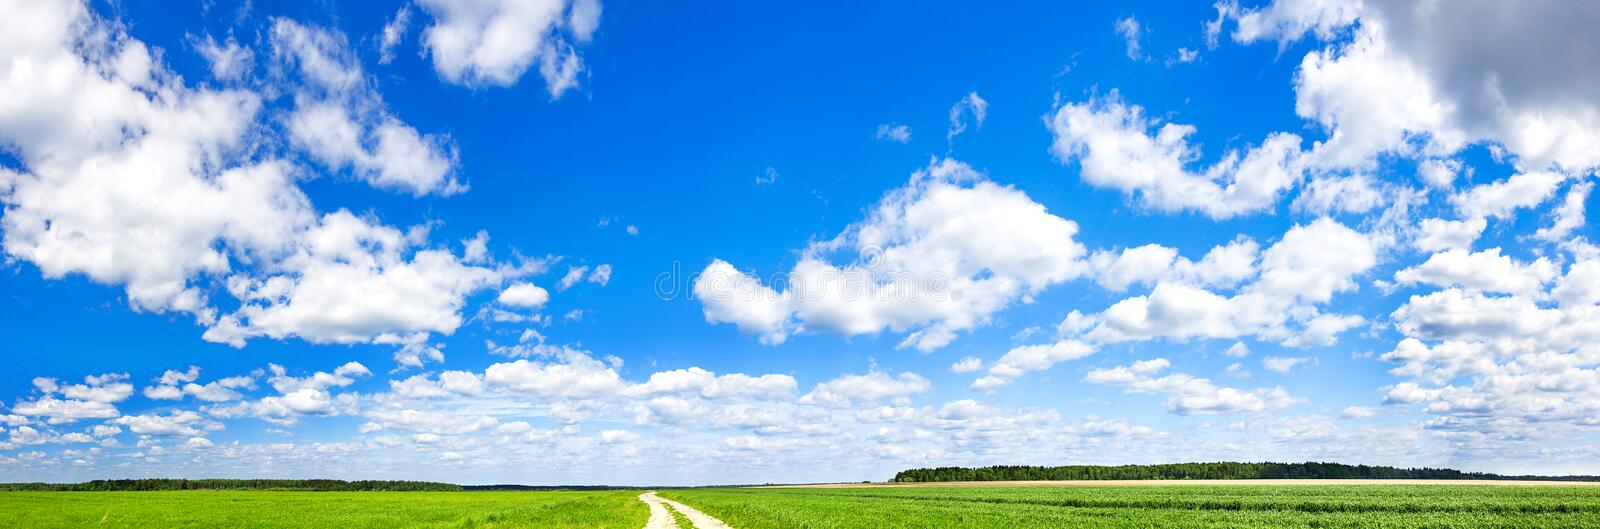 Spring landscape with blue sky,white clouds and field stock photos